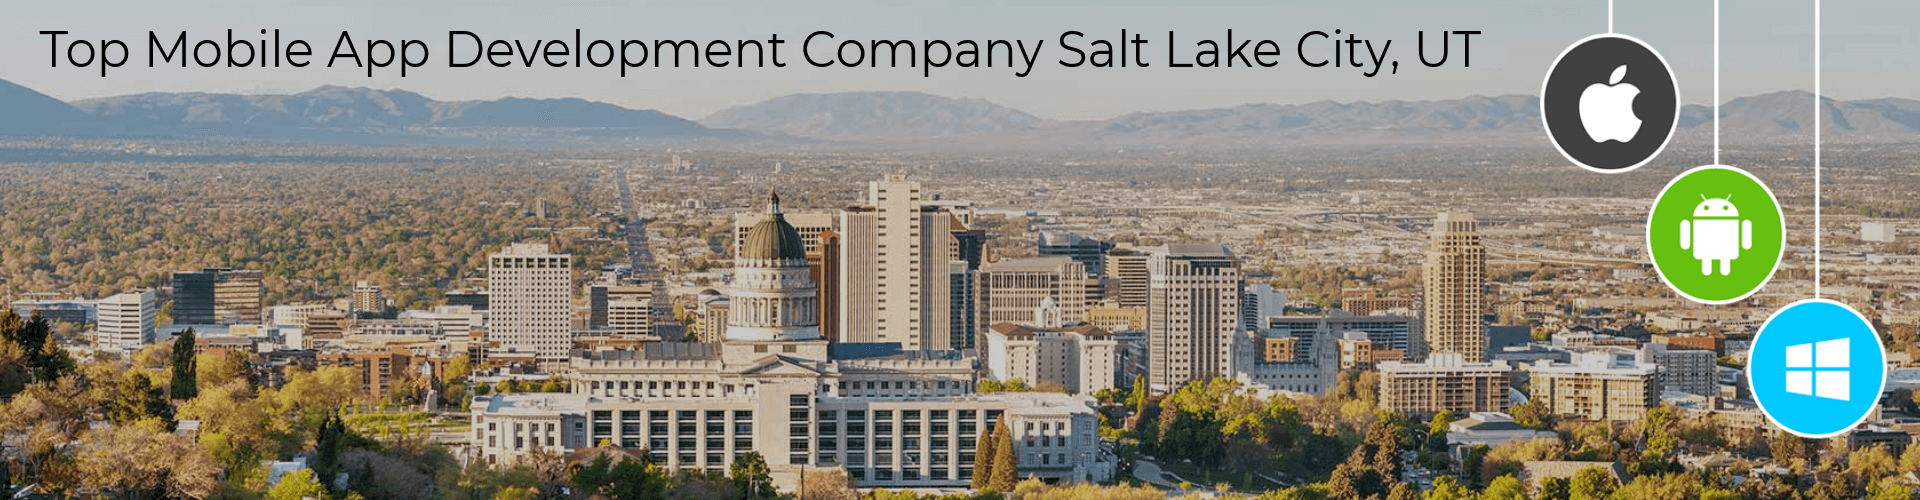 mobile app development company salt lake city